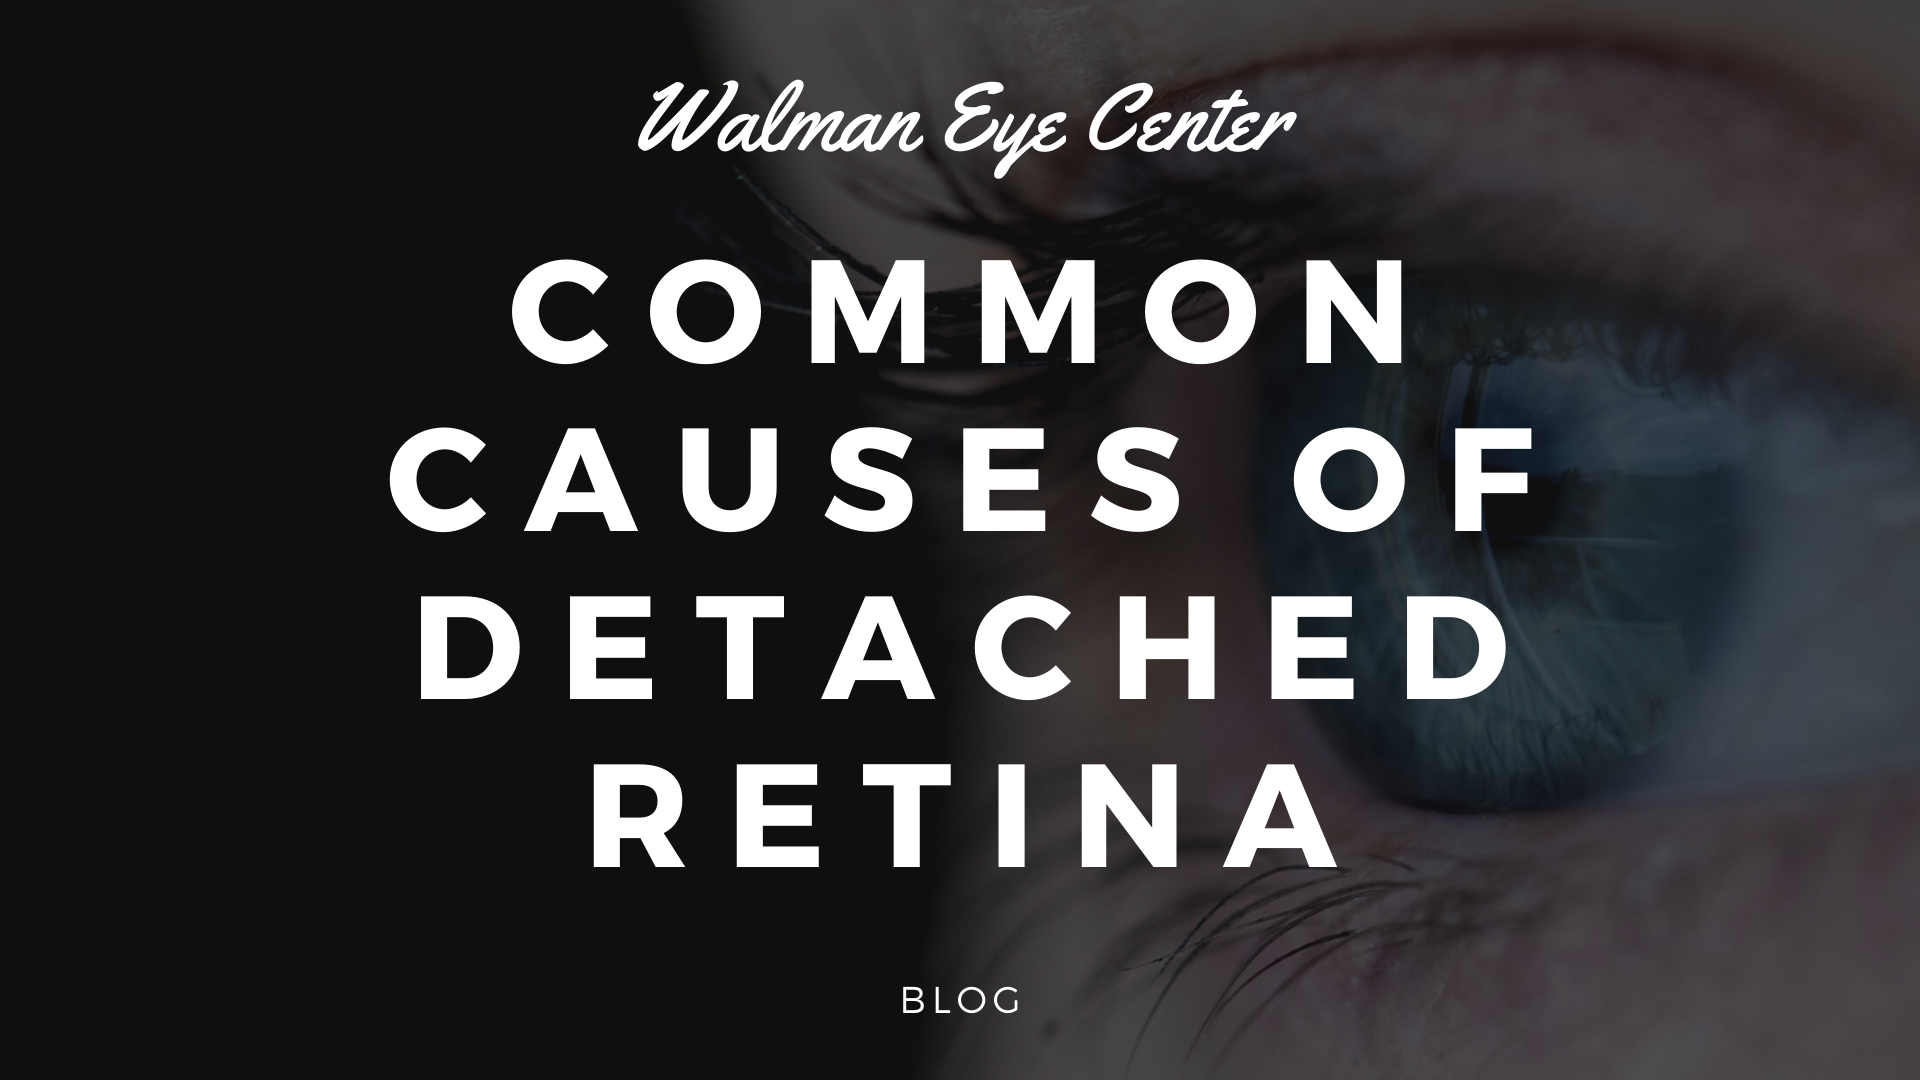 COMMON CAUSES OF DETACHED RETINA